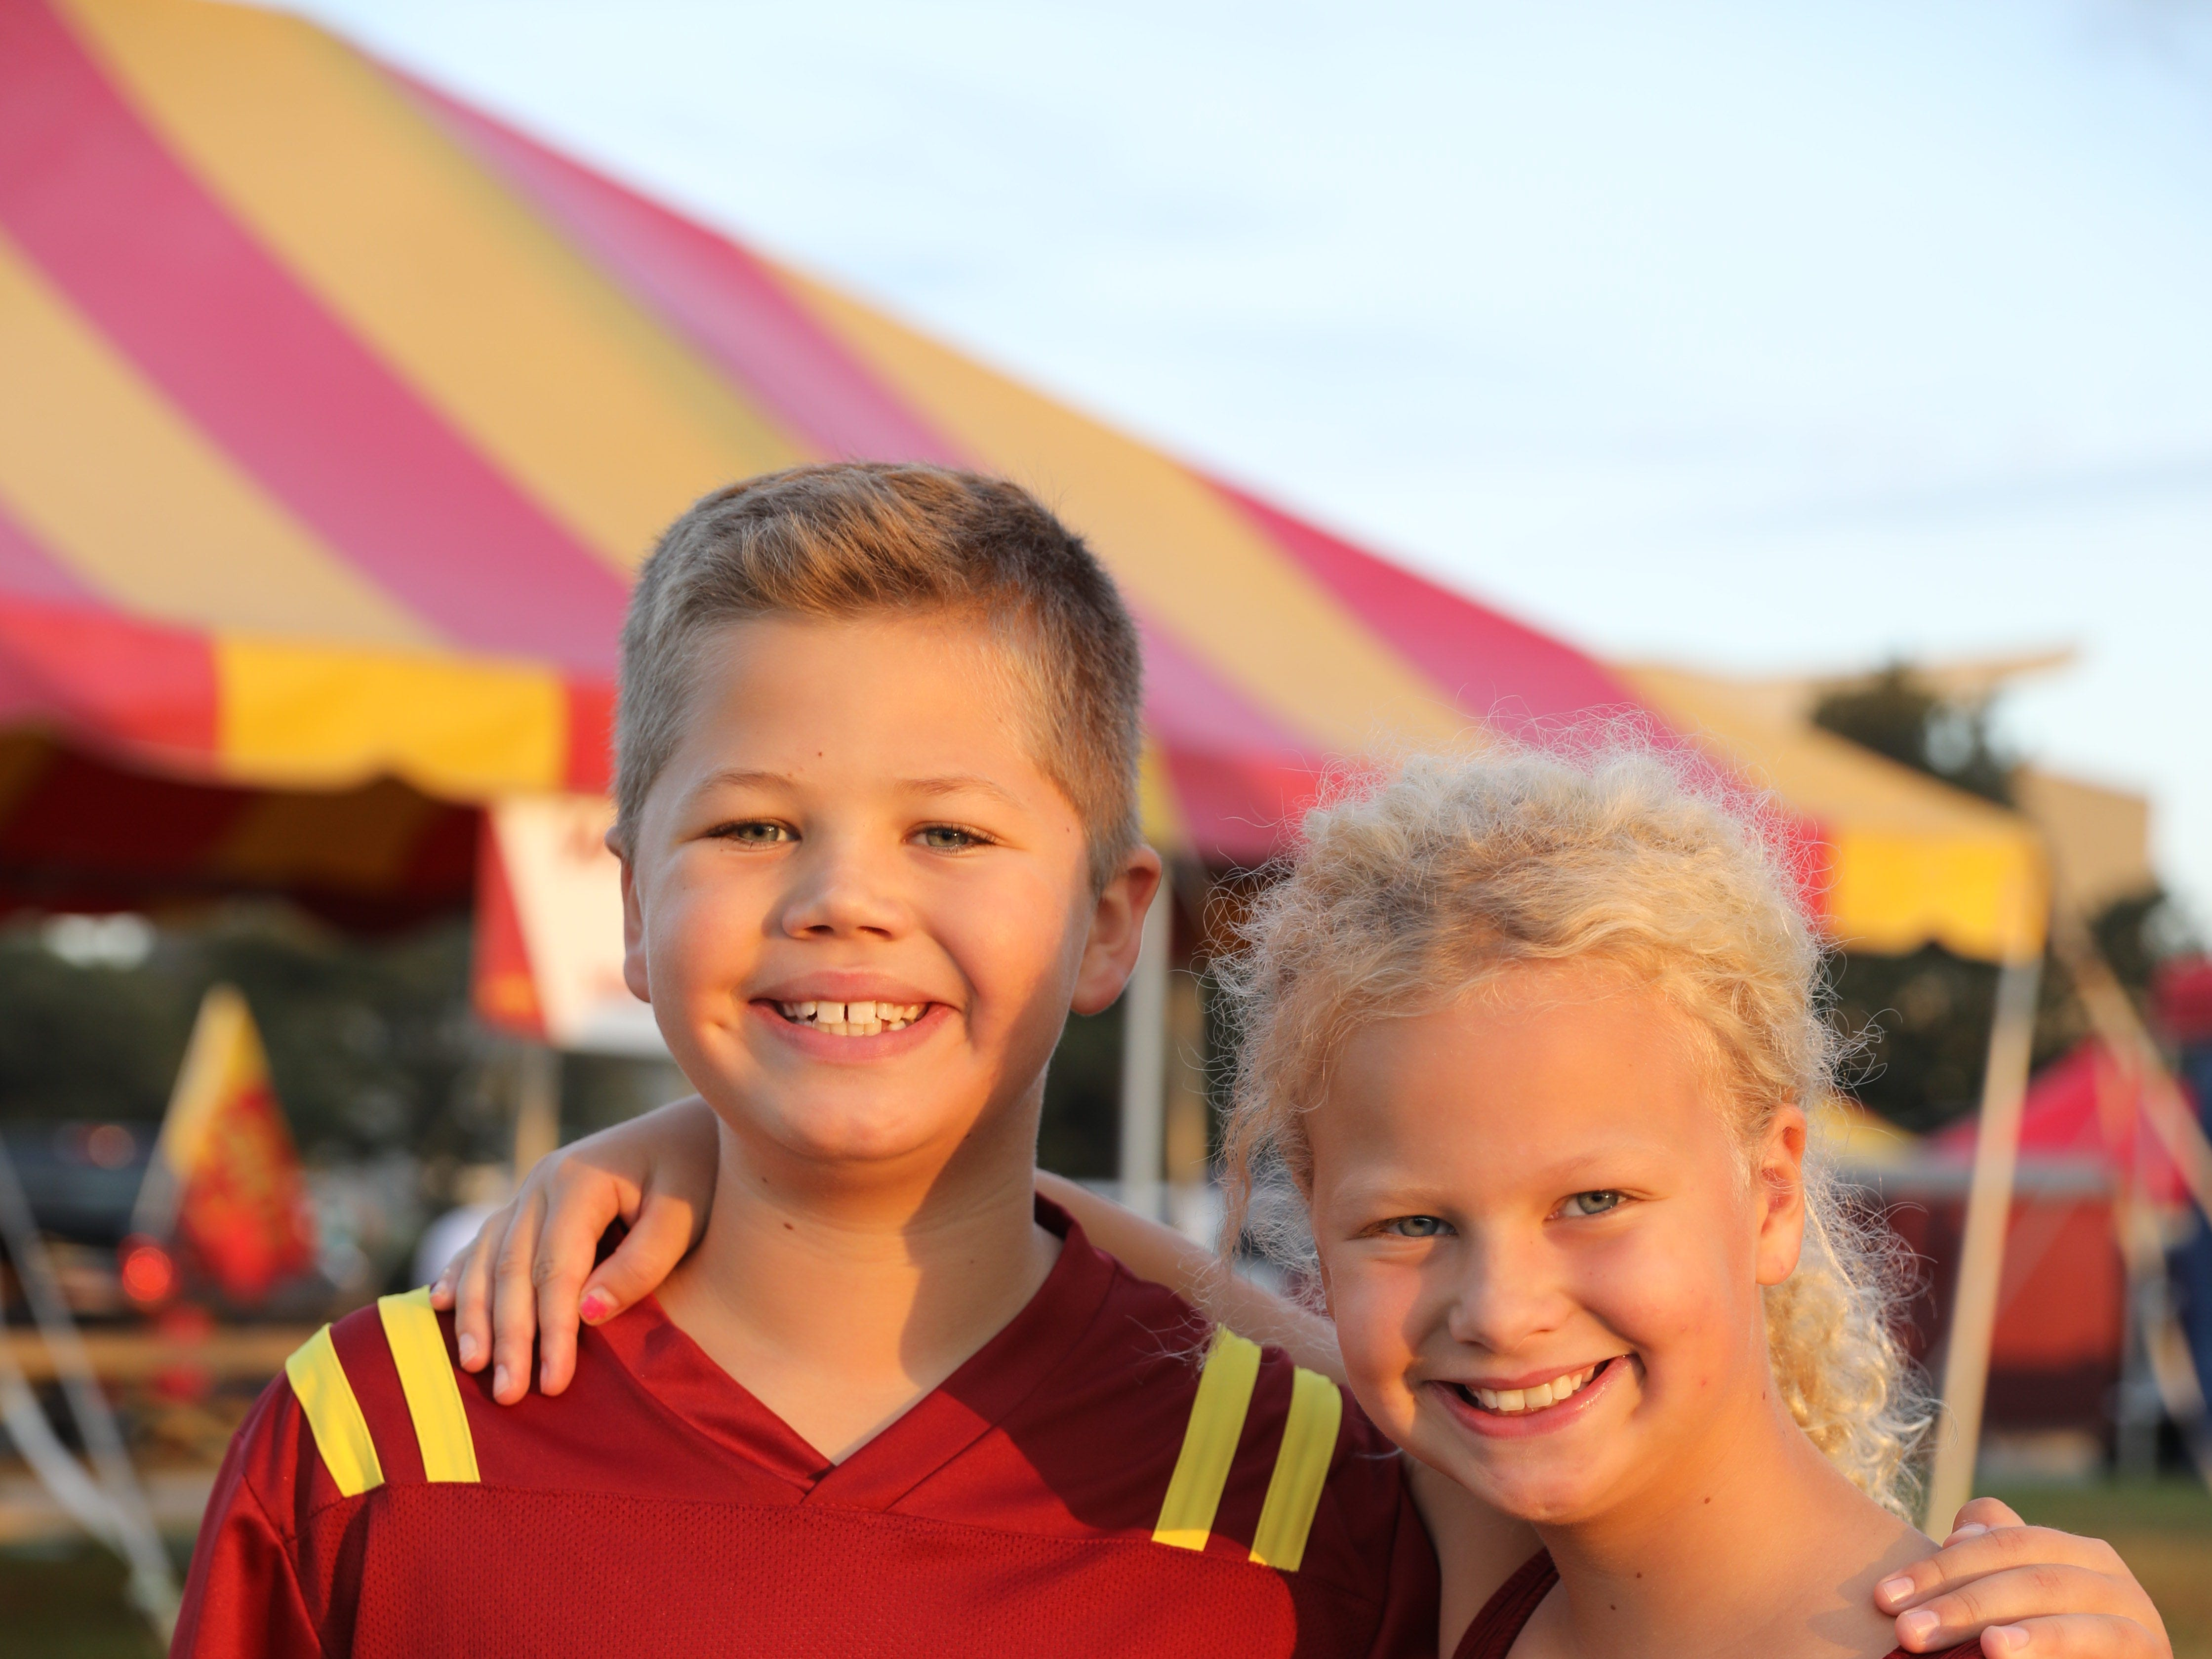 Cole Christensen, 11, and Jenna Christensen, 9, of West Des Moines, Saturday, Sept. 15, 2018, before the Iowa State football game against Oklahoma in Ames.